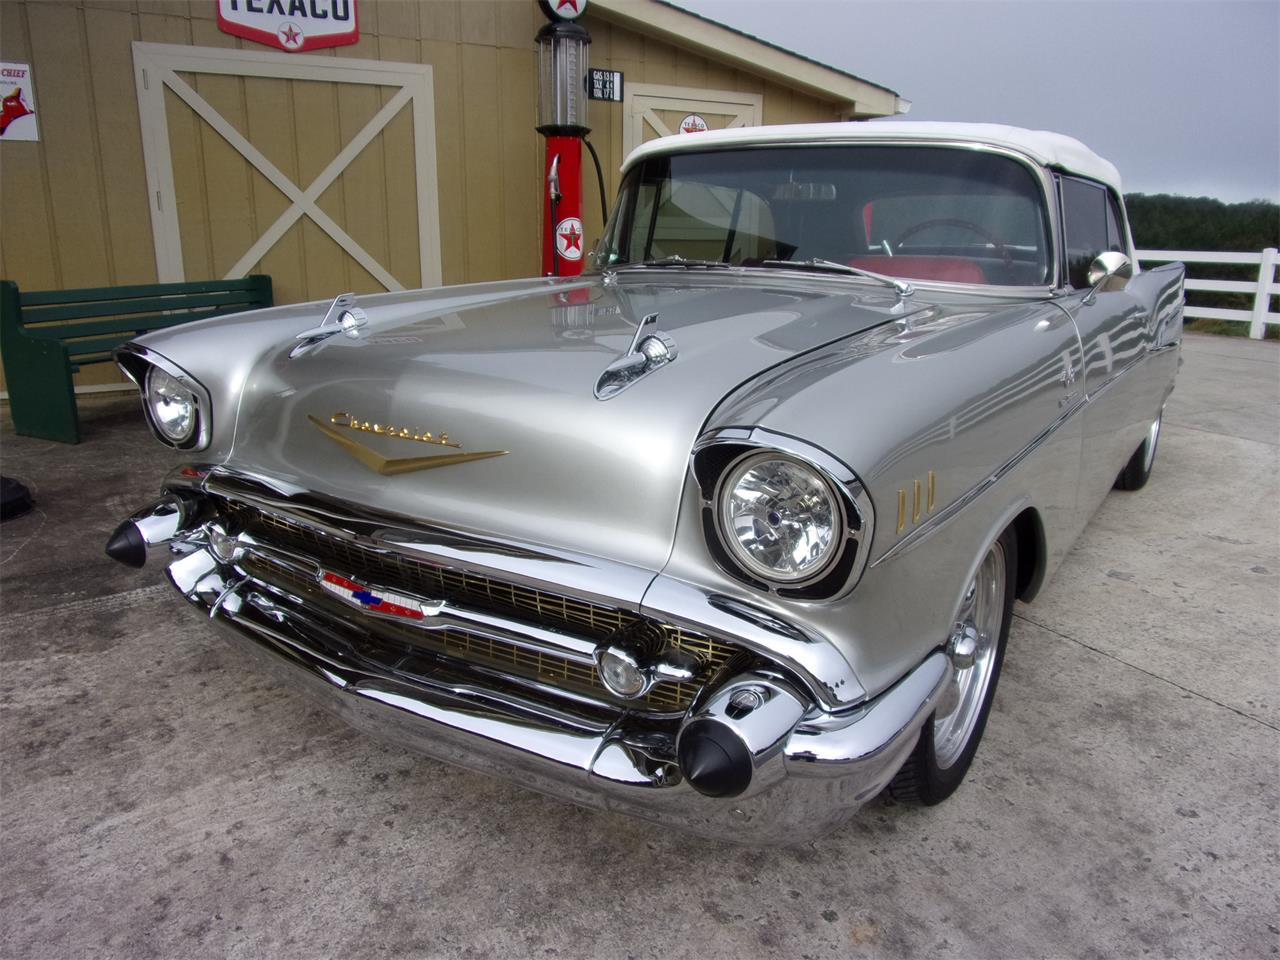 Large Picture of 1957 Chevrolet Bel Air - $105,000.00 Offered by a Private Seller - PFA8